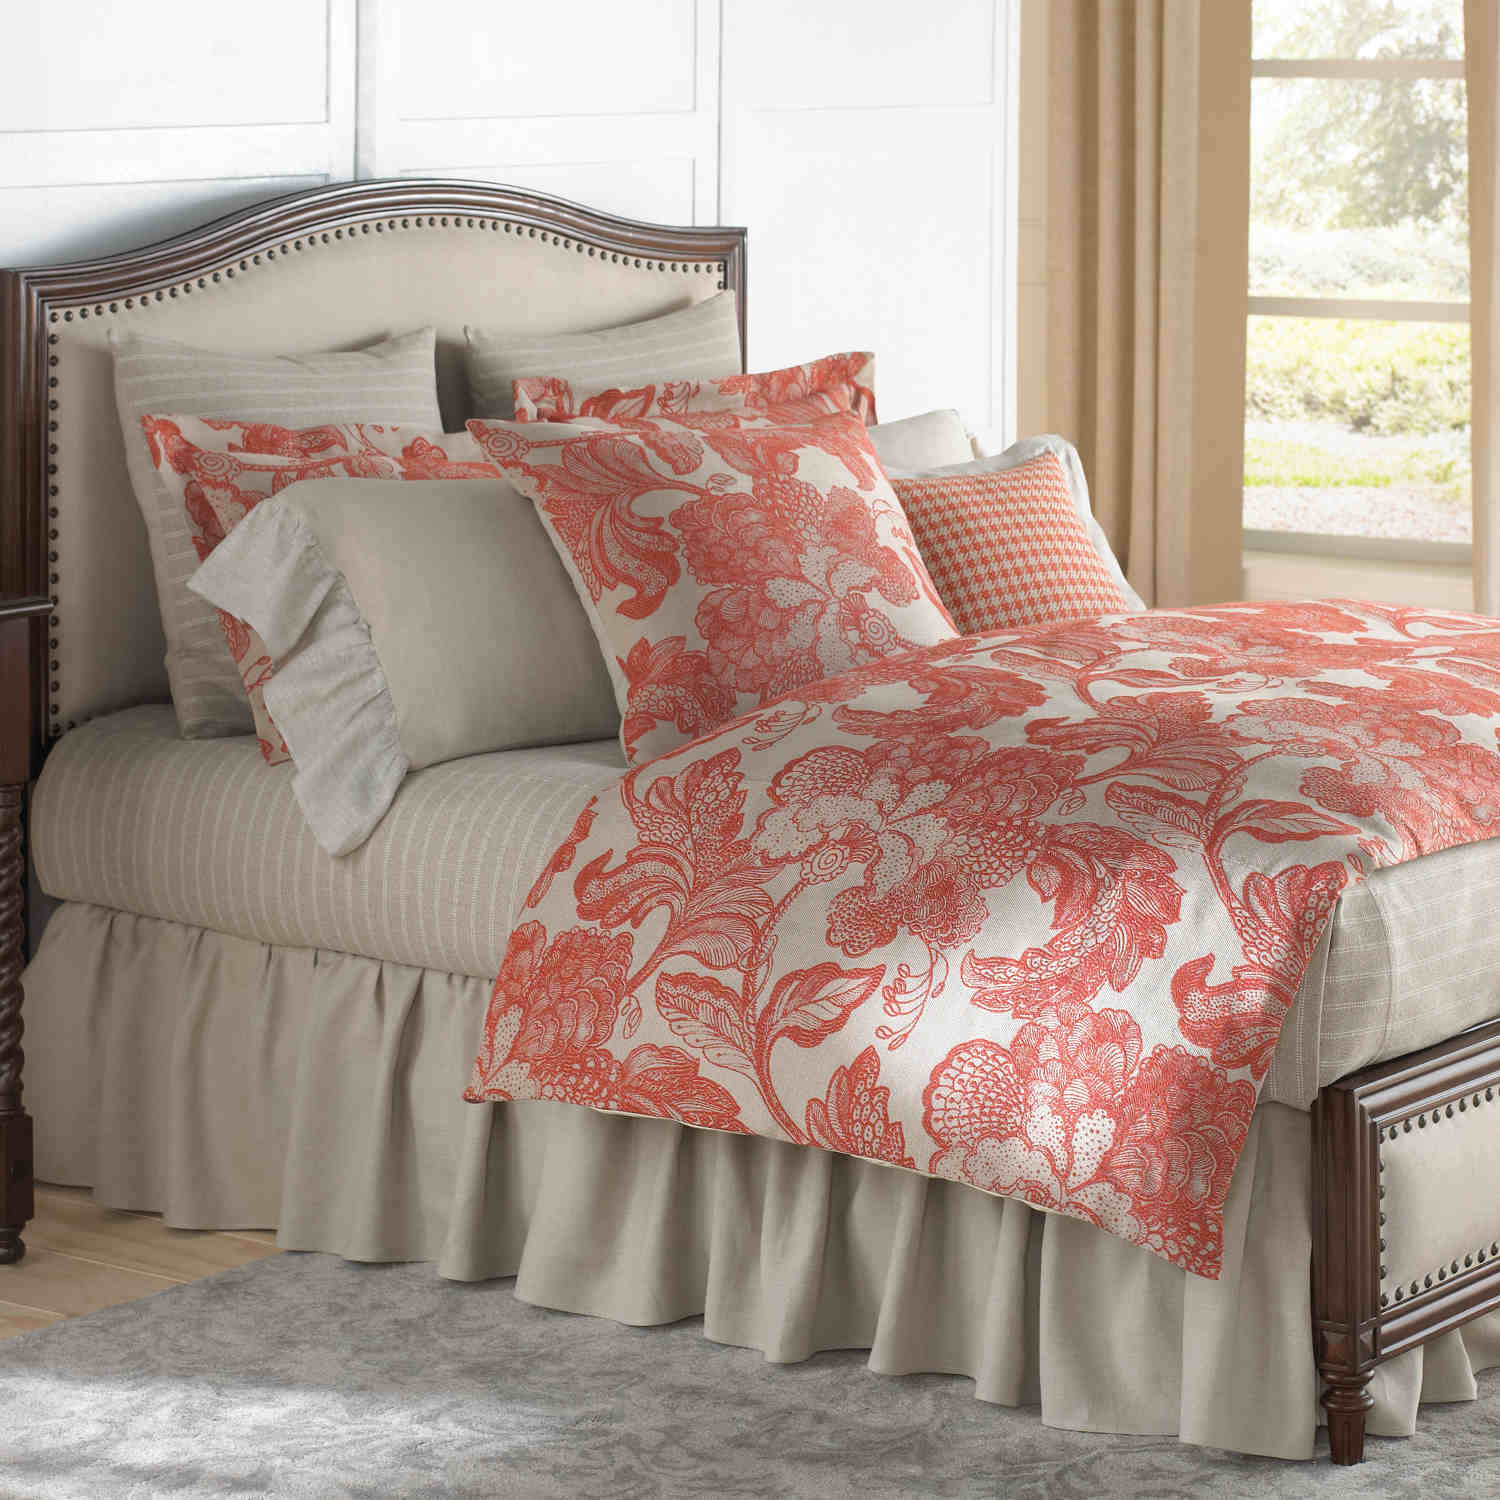 wildcat territory bedding isolde collection -